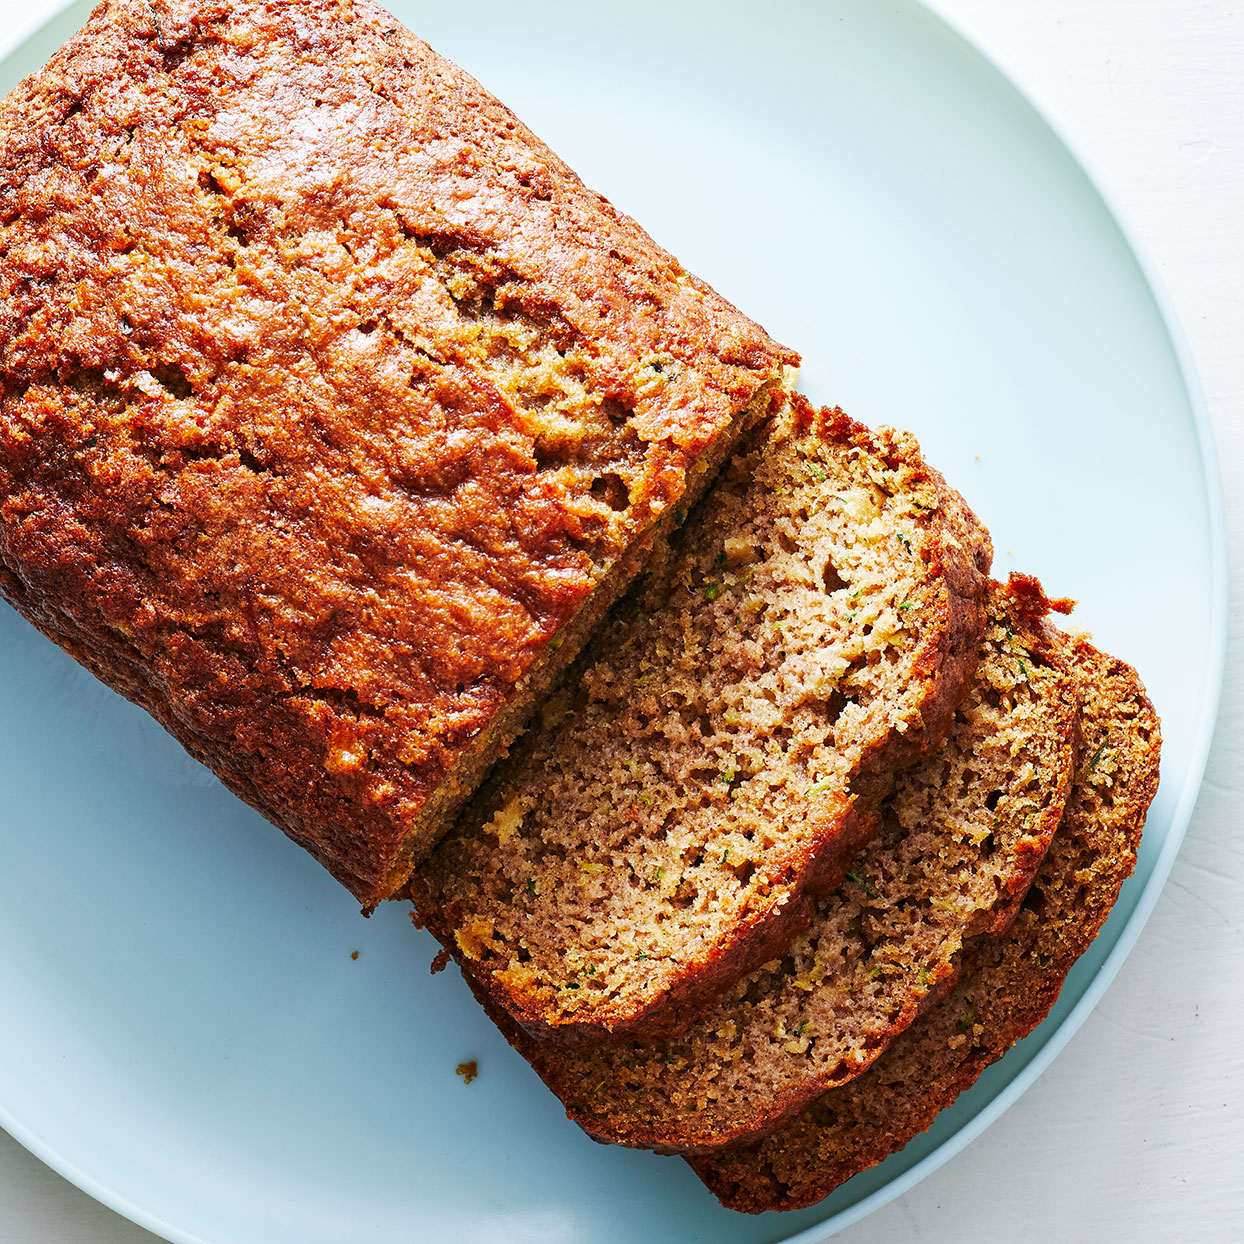 This easy zucchini-pineapple bread is the perfect healthy breakfast treat! Saving the pineapple juice strained from the can to brush on top of the bread keeps it moist and adds more pineapple flavor. Source: EatingWell.com, May 2020